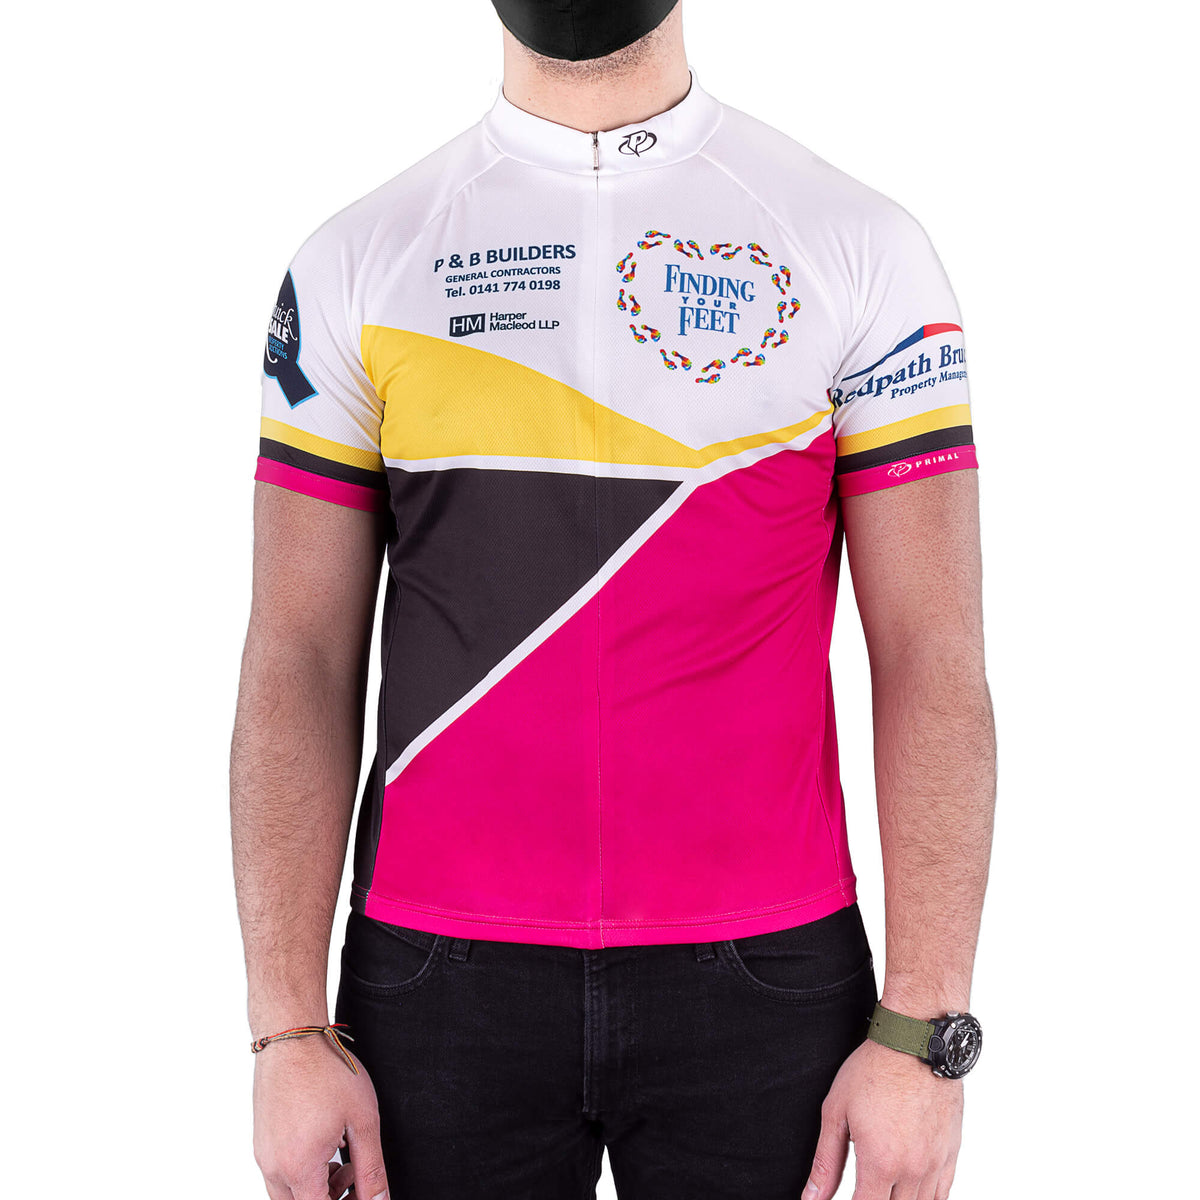 finding your feet cycle top - pink black and yellow